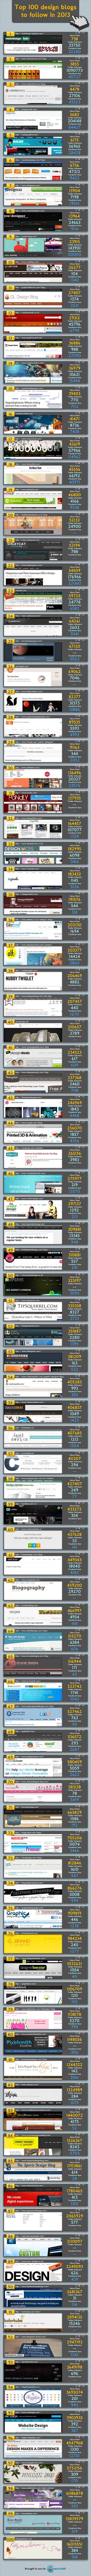 Top 100 design blog to follow in 2013 #infographic great stuff #blogging